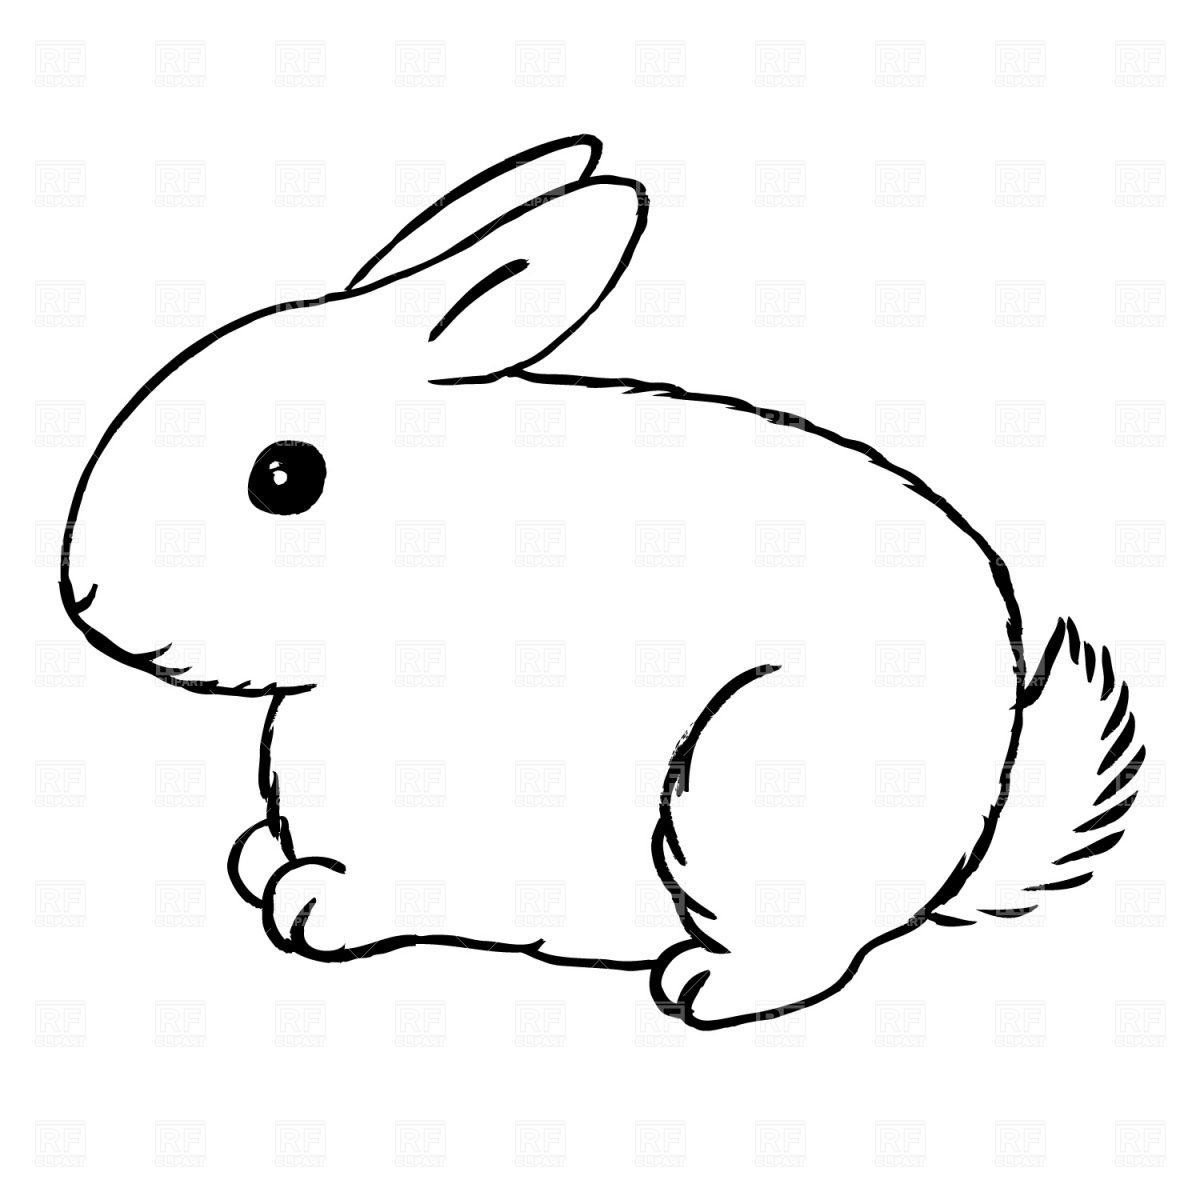 drawings of rabbits and bunnies use these free images for your rh pinterest com bunny clipart images bunny clip art for kids